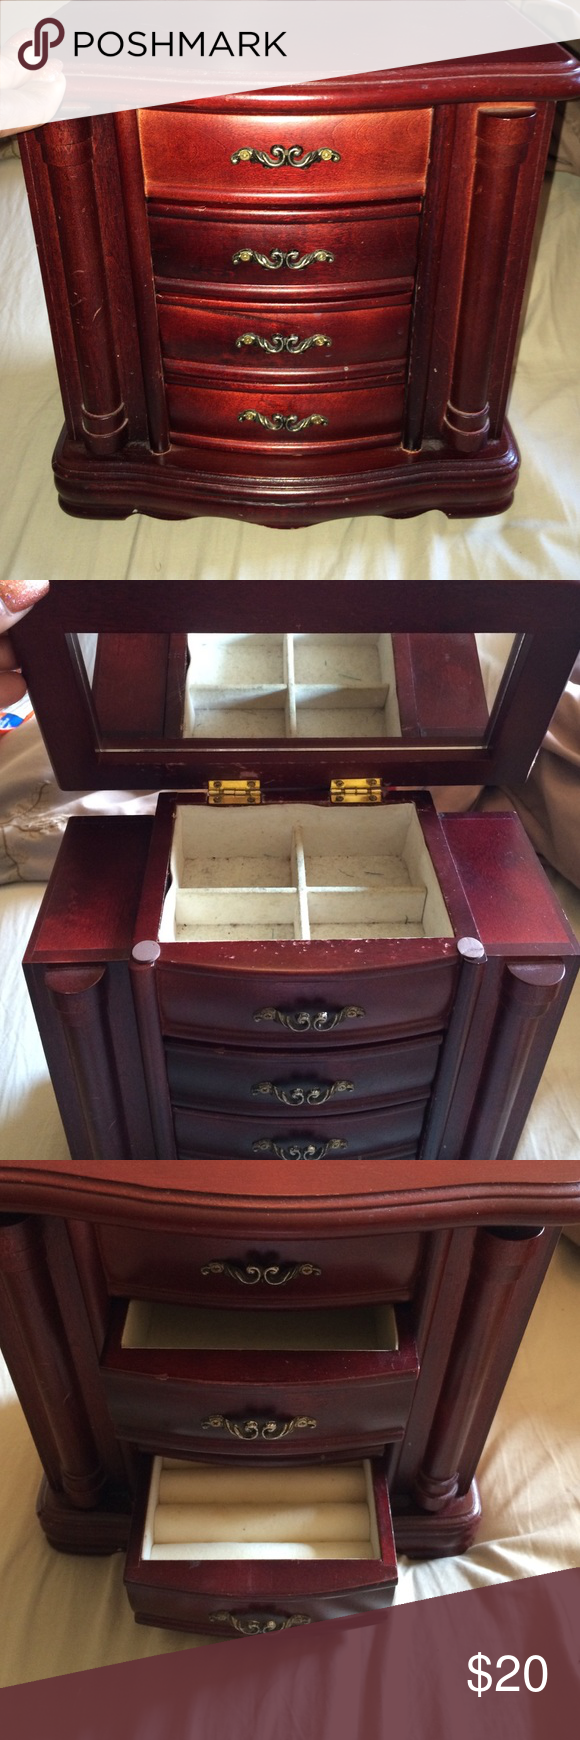 Jewelry Boxes At Kohl's Cherry Wood Jewelry Box Has A Mirror On Inside Top With 4 Separate